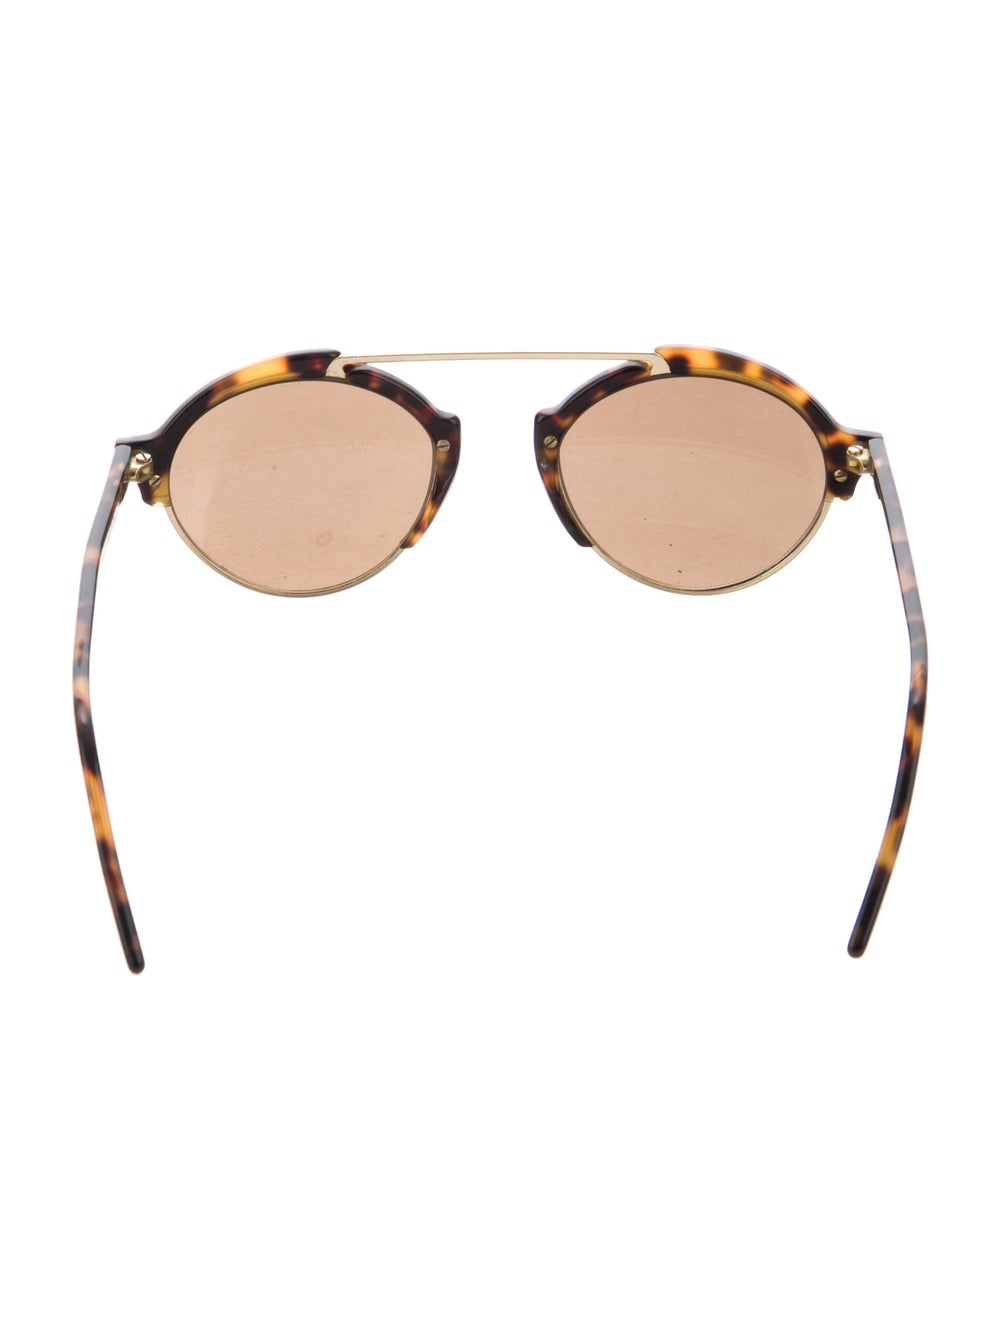 Warby Parker Round Mirrored Sunglasses Gold - image 3